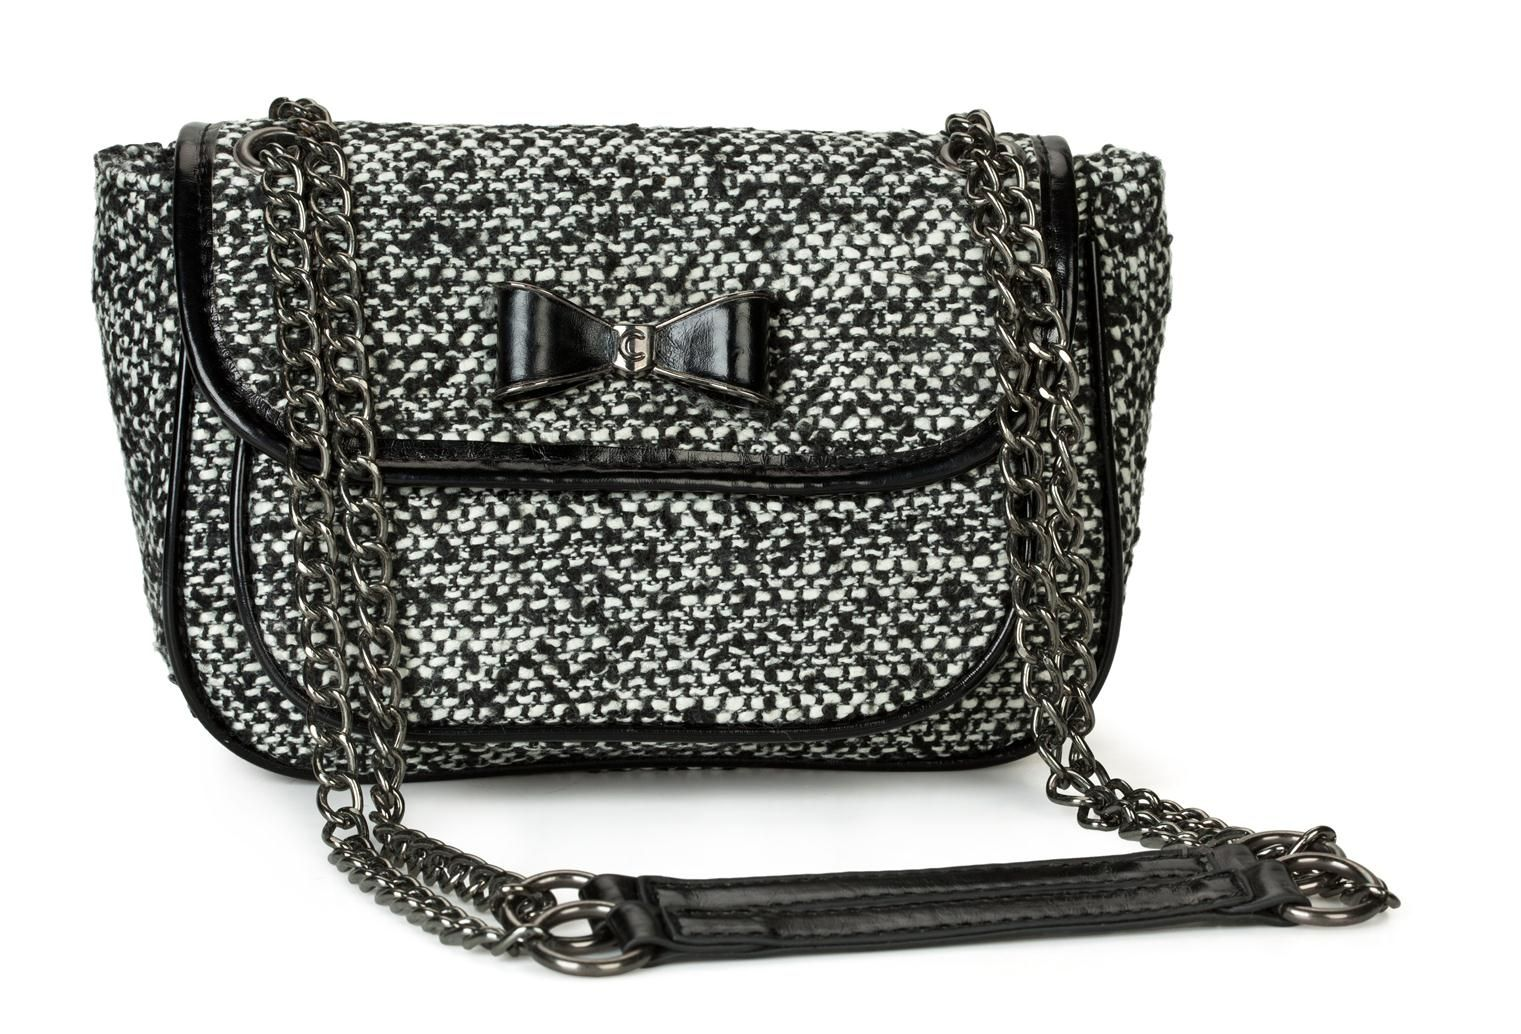 Wool & leather shoulder bag with chain strap